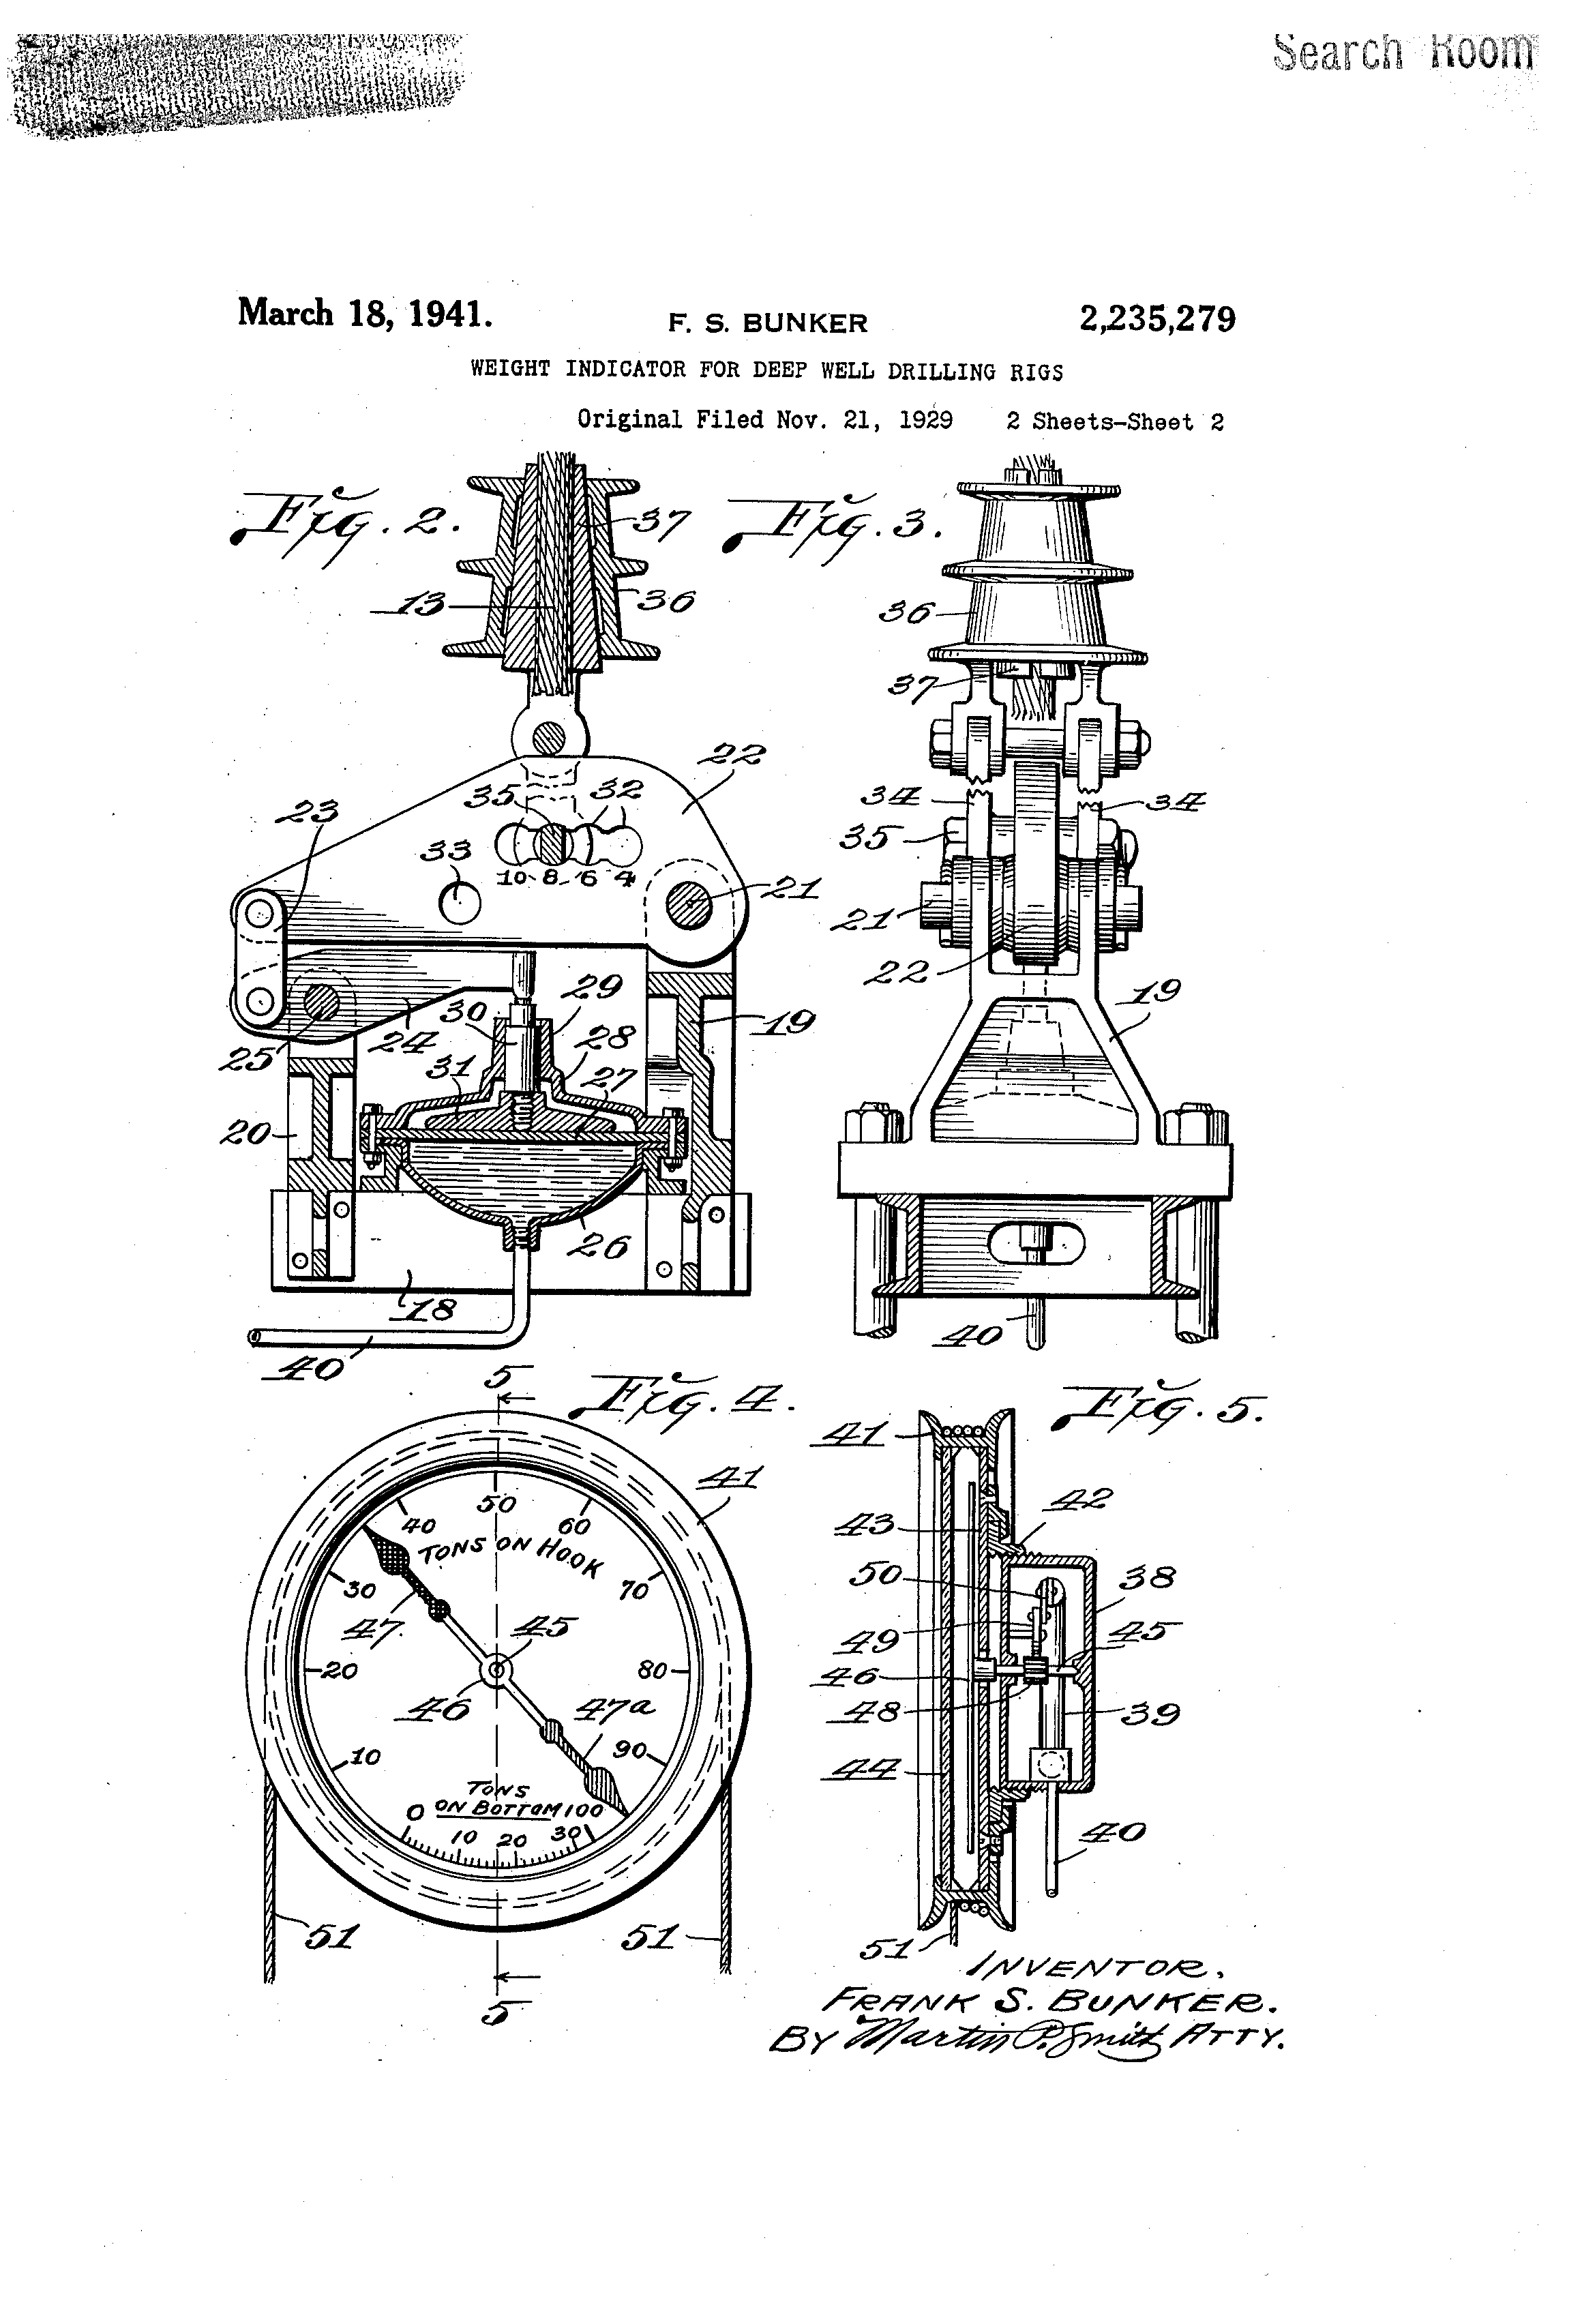 Marten Decker Load Indicator : Patent us weight indicator for deep well drilling